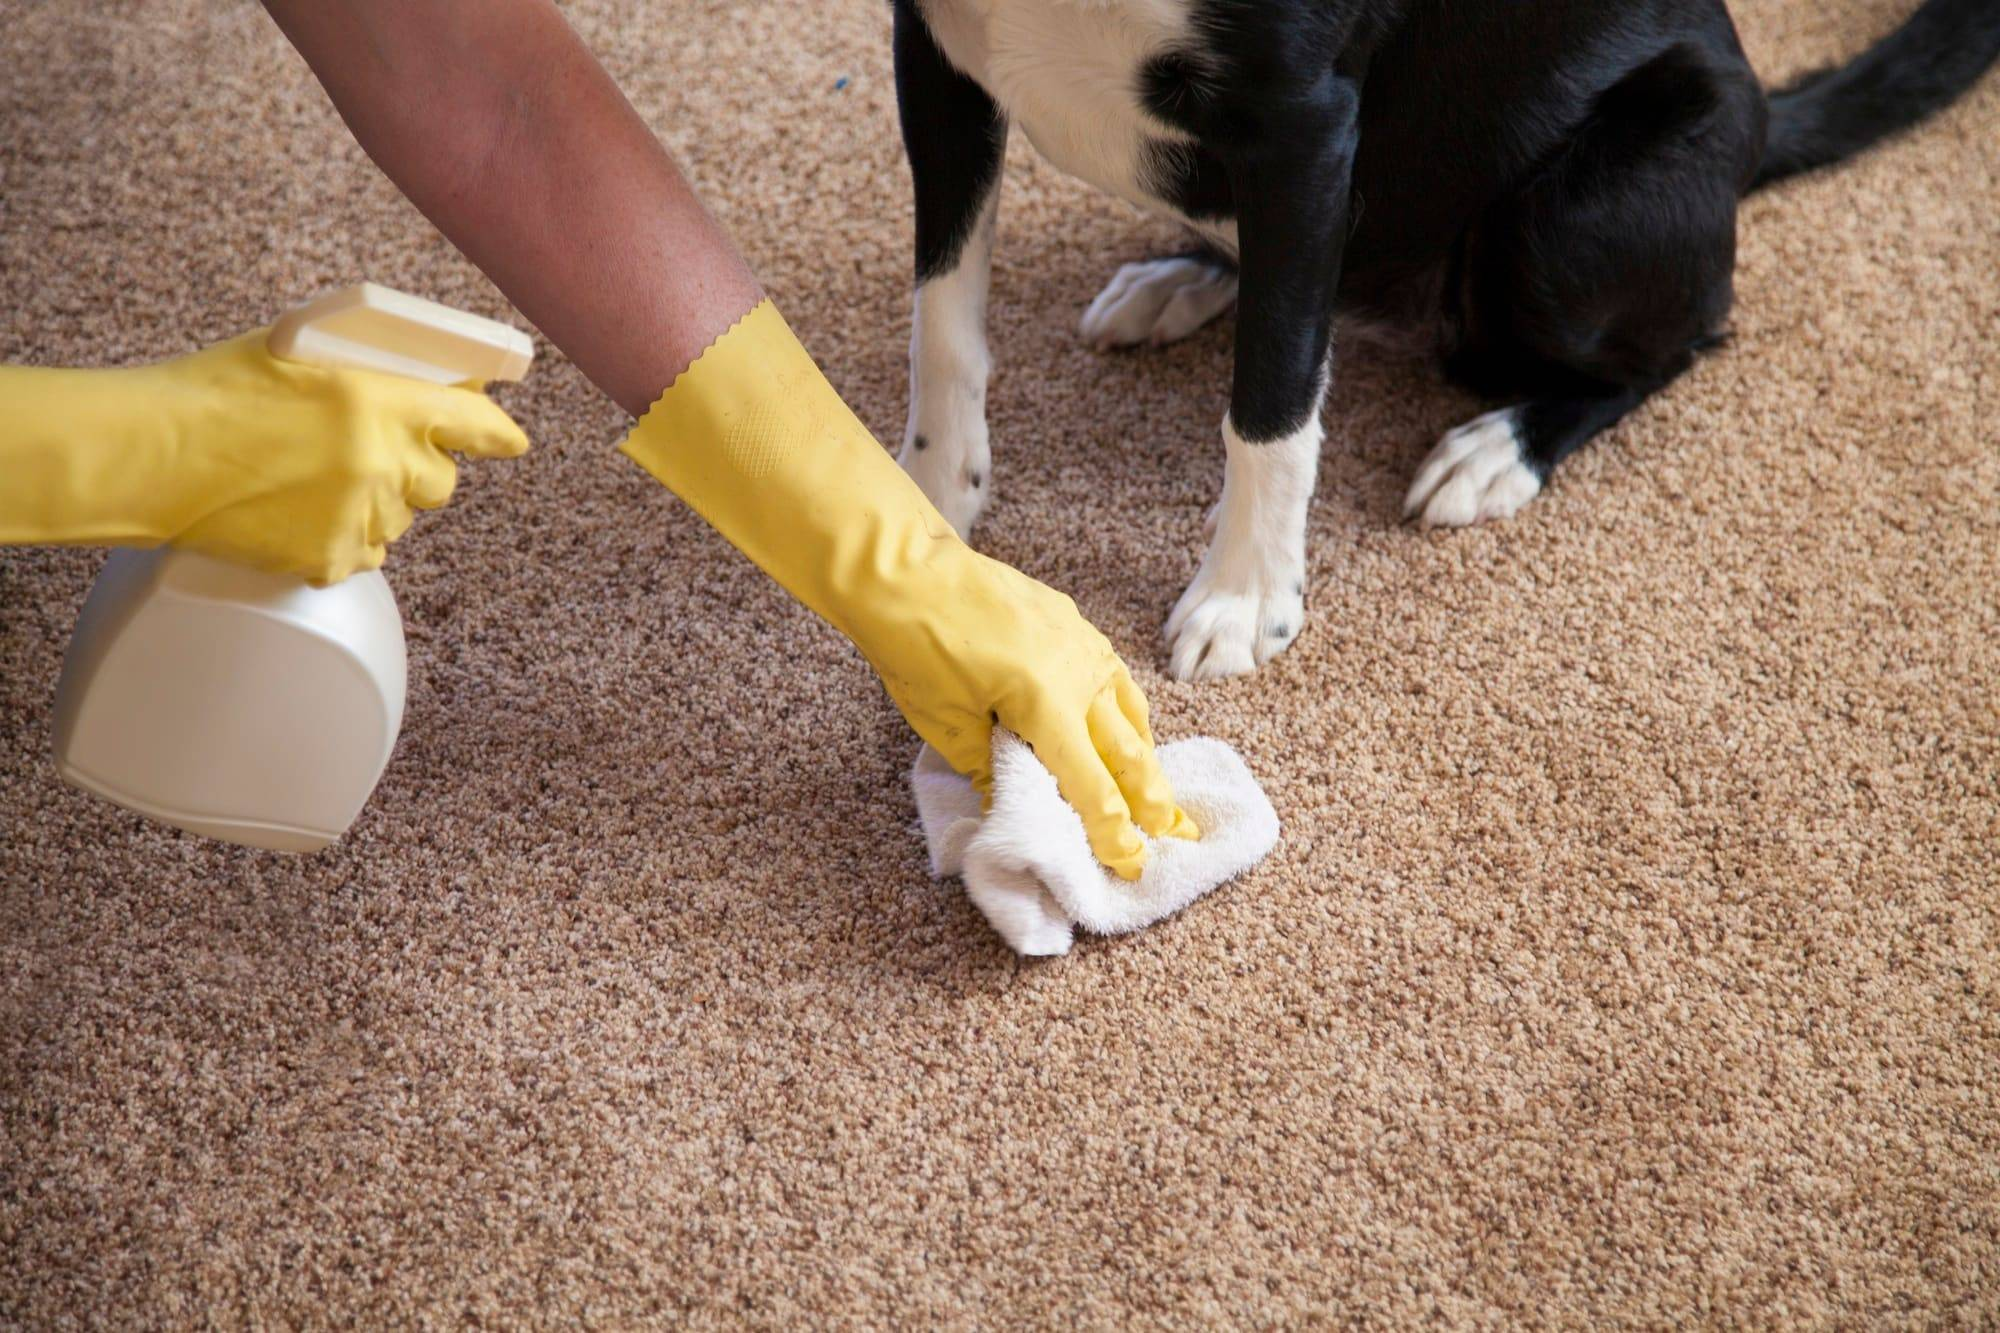 tow hands with yellow gloves holding shower in one and towel in other and a dog is sitting very next to it